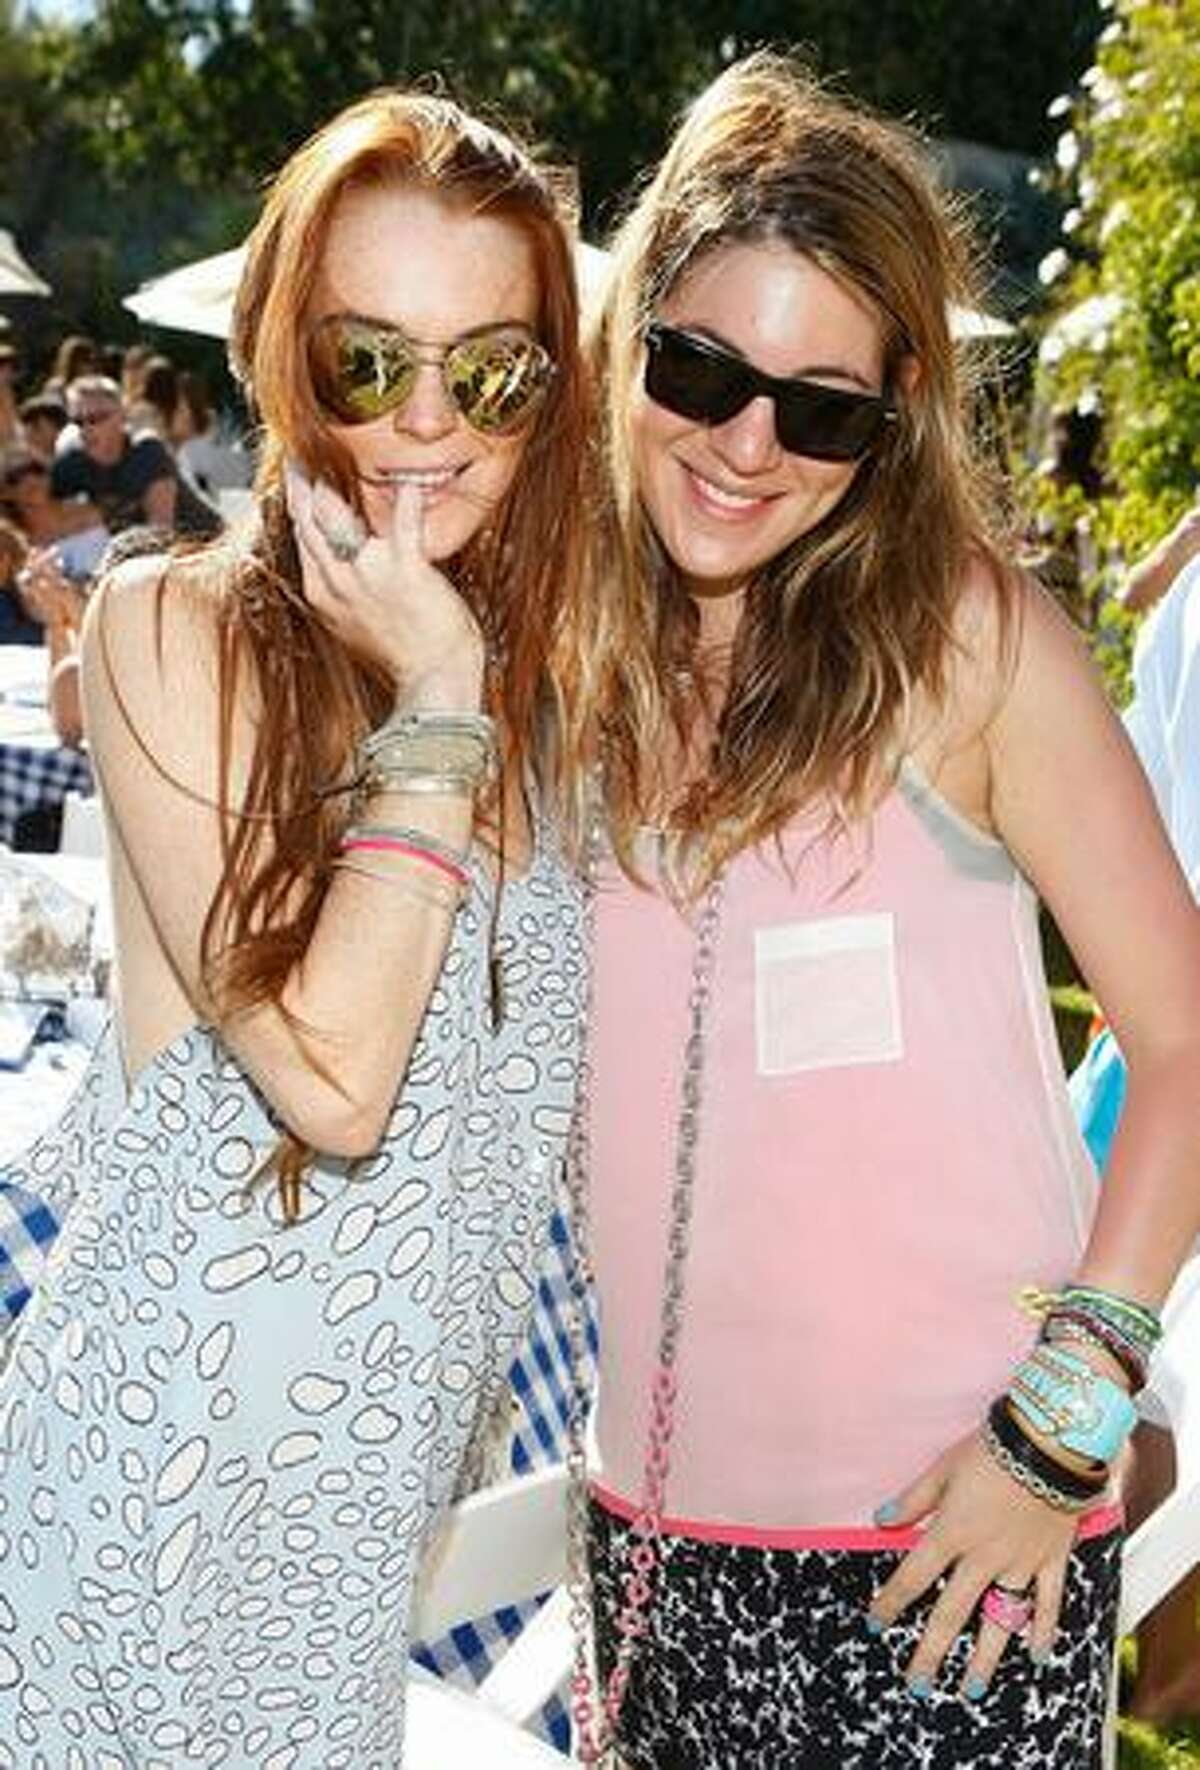 Actress Lindsay Lohan (L) and designer Dani Stahl attend the Lia Sophia Clam Bake at a private residence in Malibu, California.